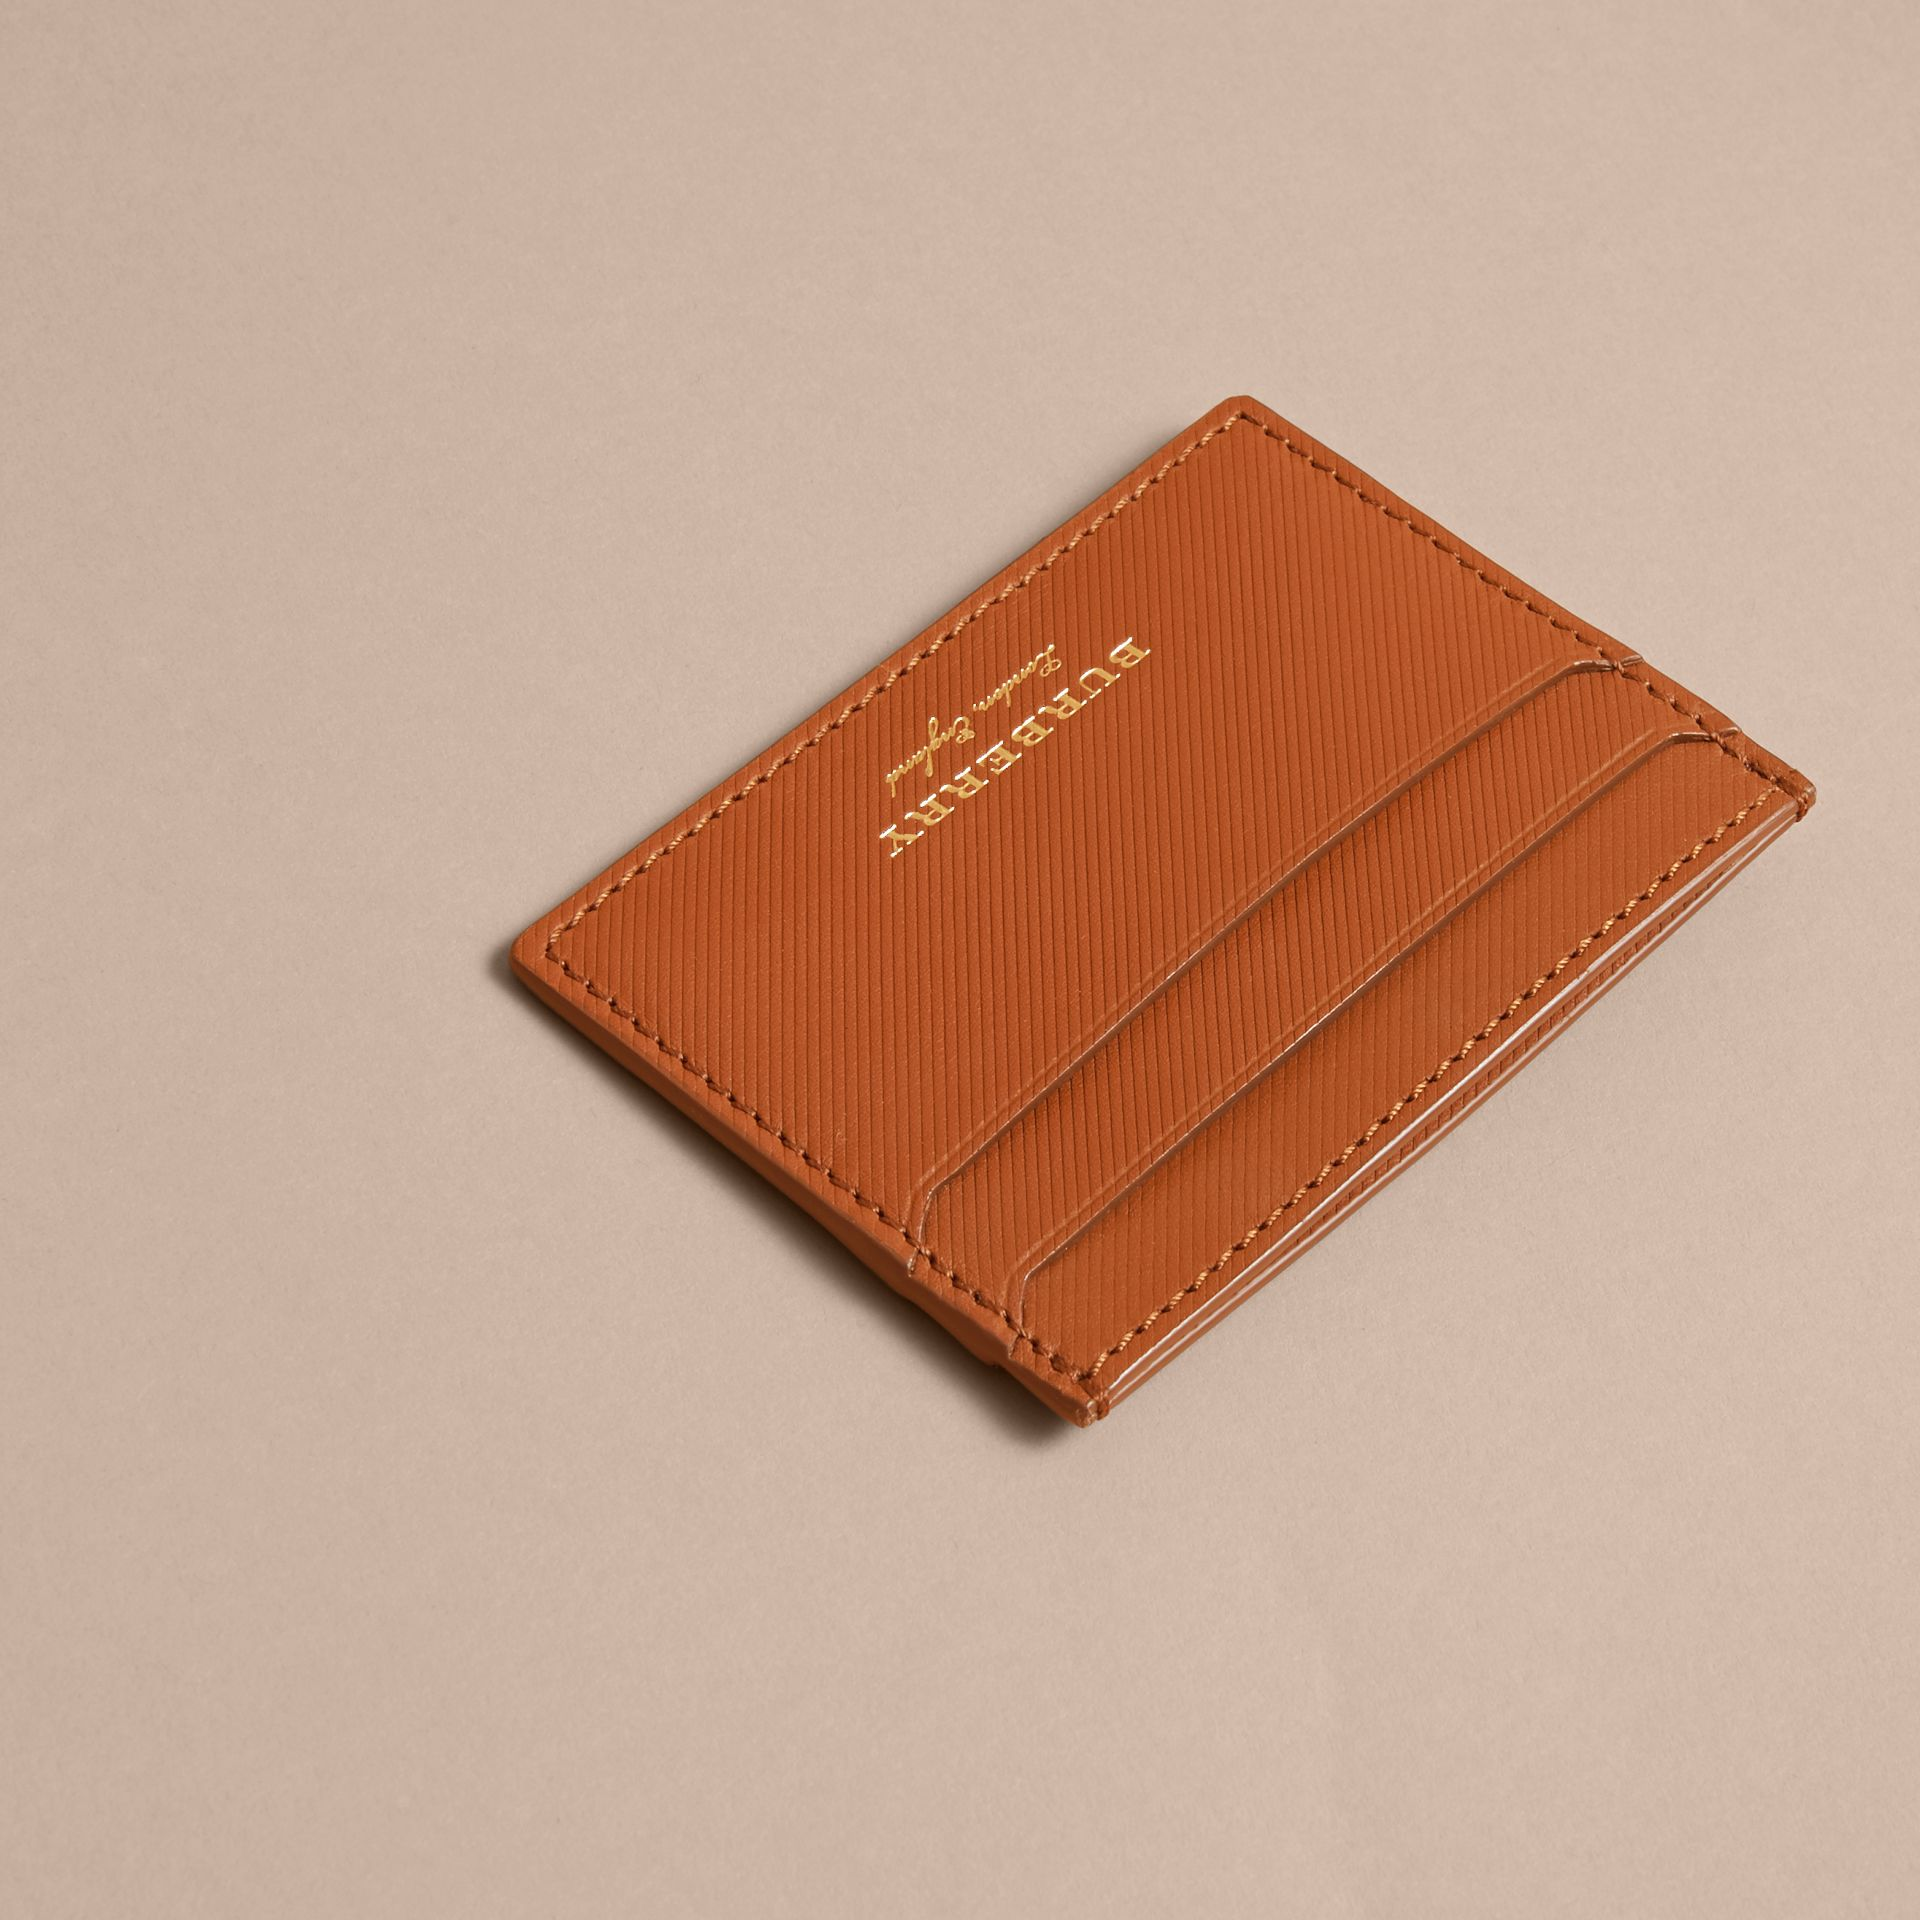 Trench Leather Card Case in Tan - Men | Burberry United Kingdom - gallery image 3